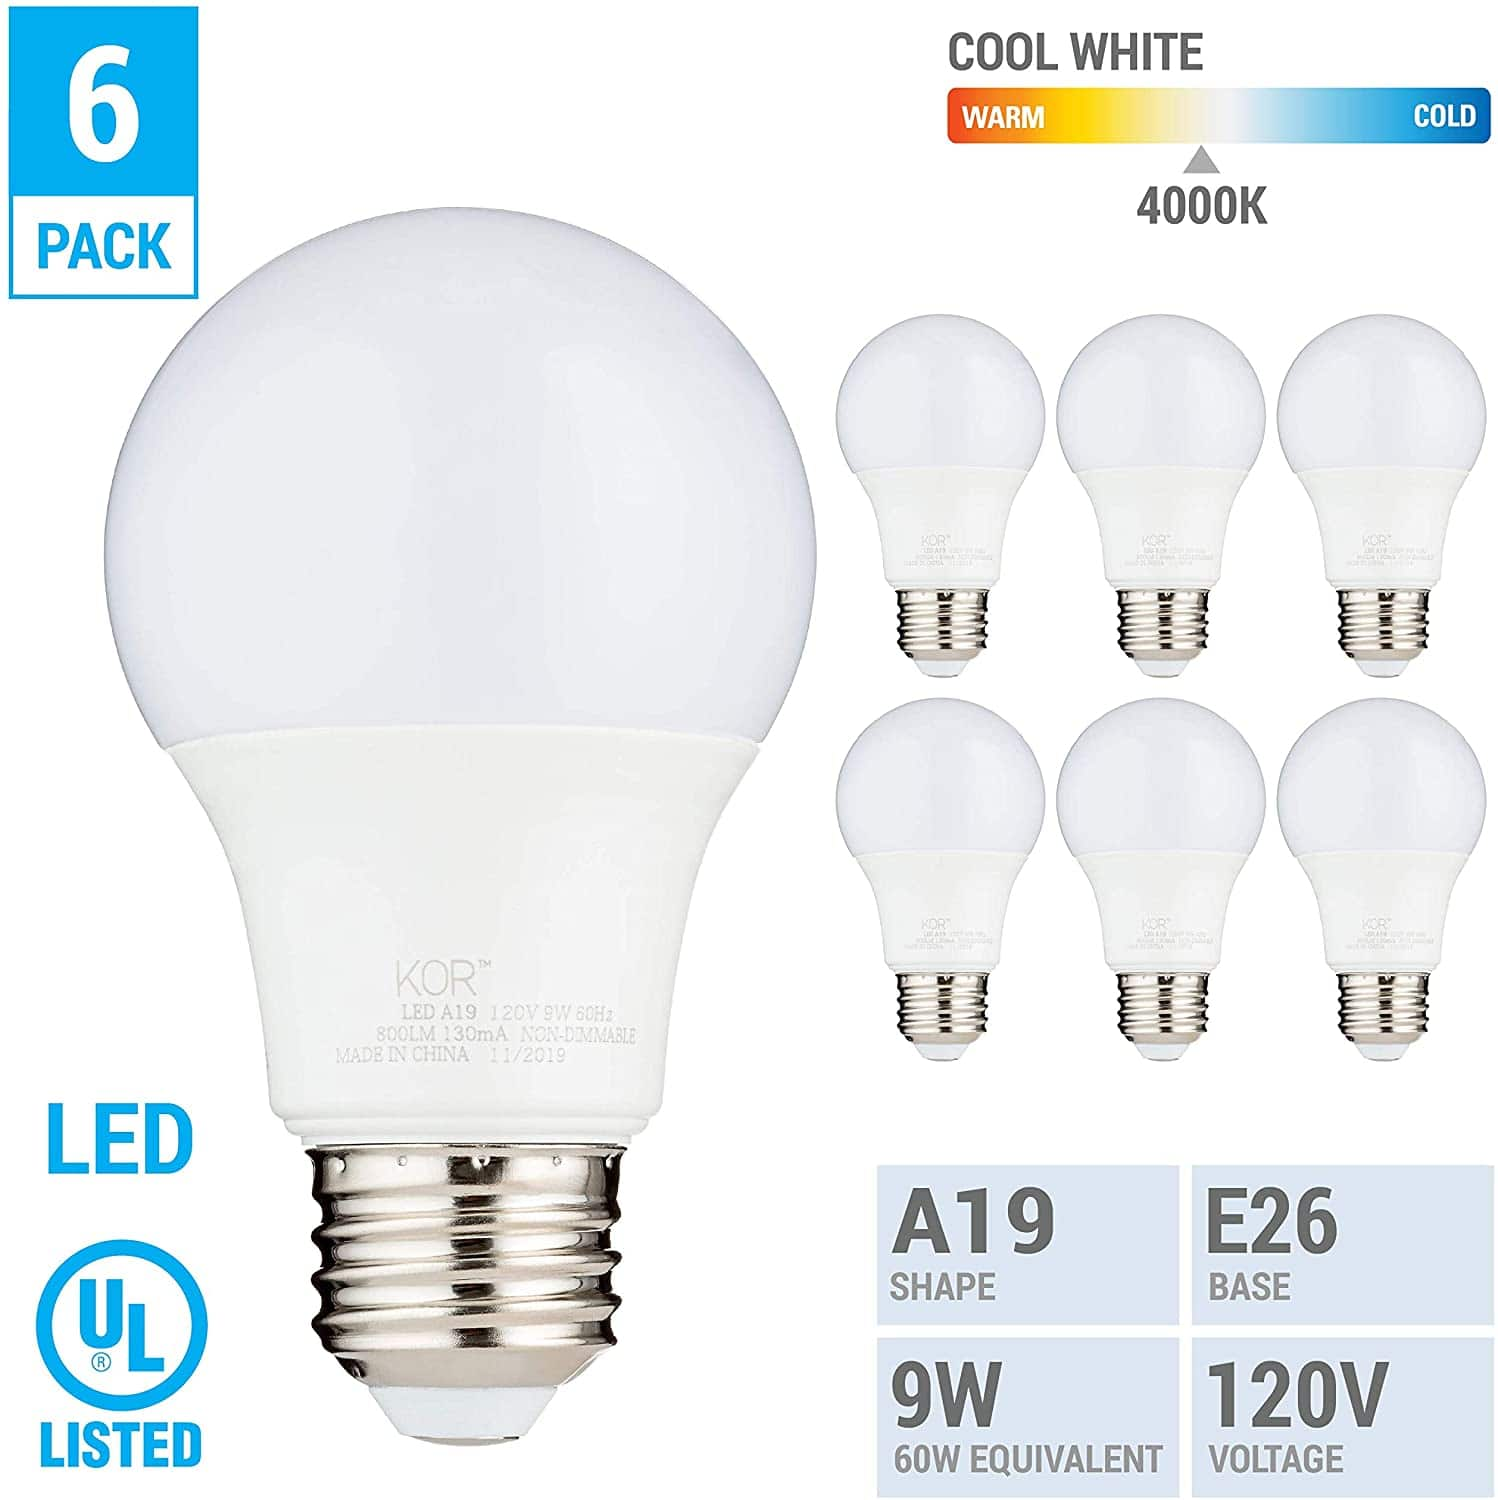 Save 50% OFF On a (6 PACK) 9W LED A19 Light Bulb - Equivalent to 60W - Non Dimmable - 800 Lumens - E26 Base - UL Listed - 15000 Hours $4.87